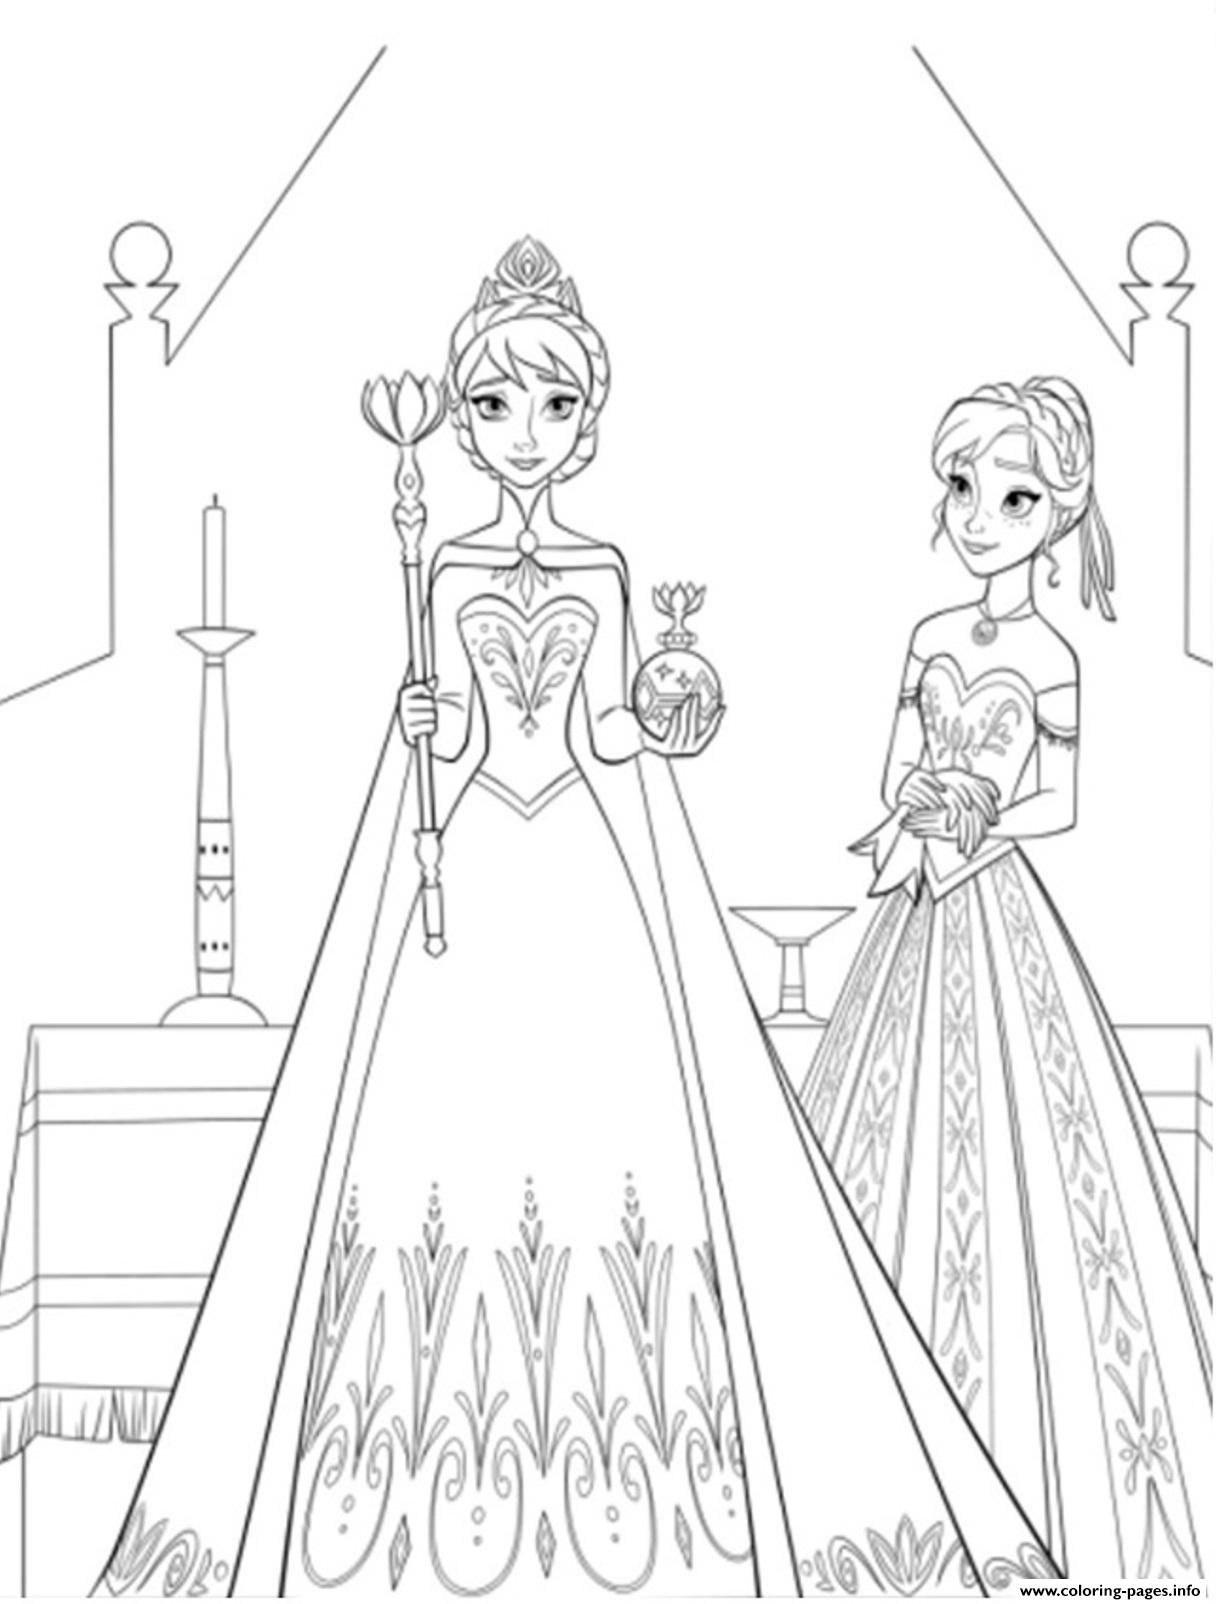 Coloring Page Free Frozen Disney6da1 coloring pages